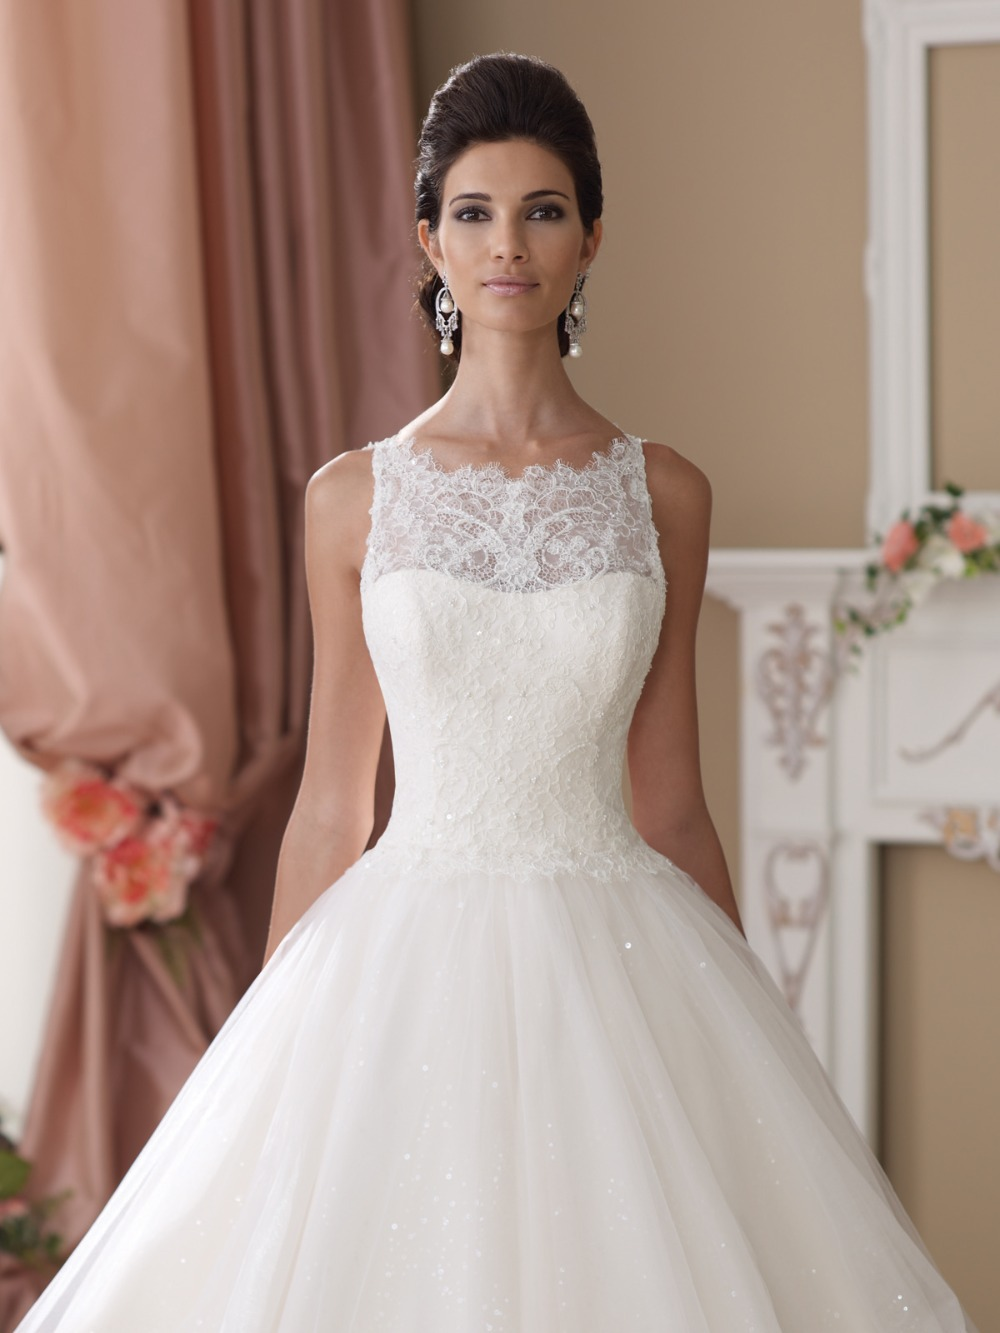 Dresses For Women For Weddings petite women wedding dress 8 40